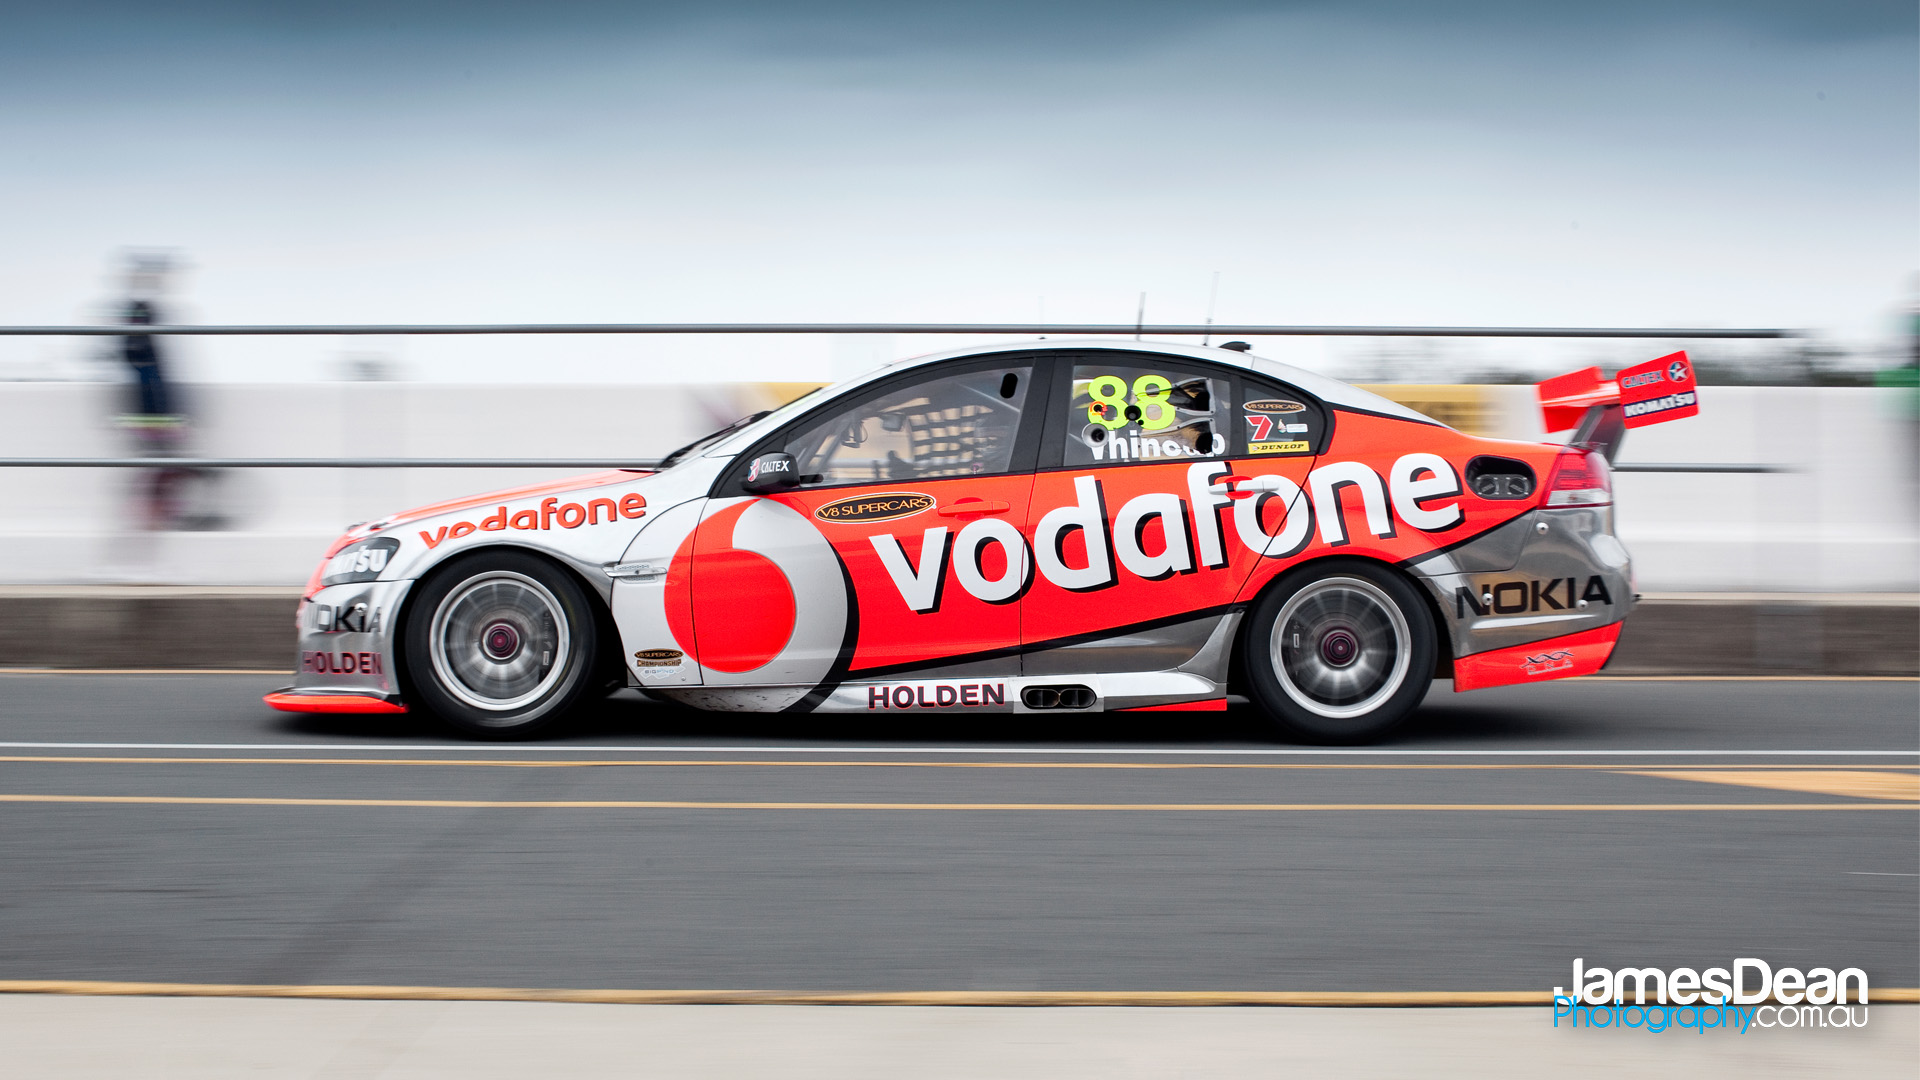 v8 supercar Computer Wallpapers Desktop Backgrounds 1920x1080 ID 1920x1080